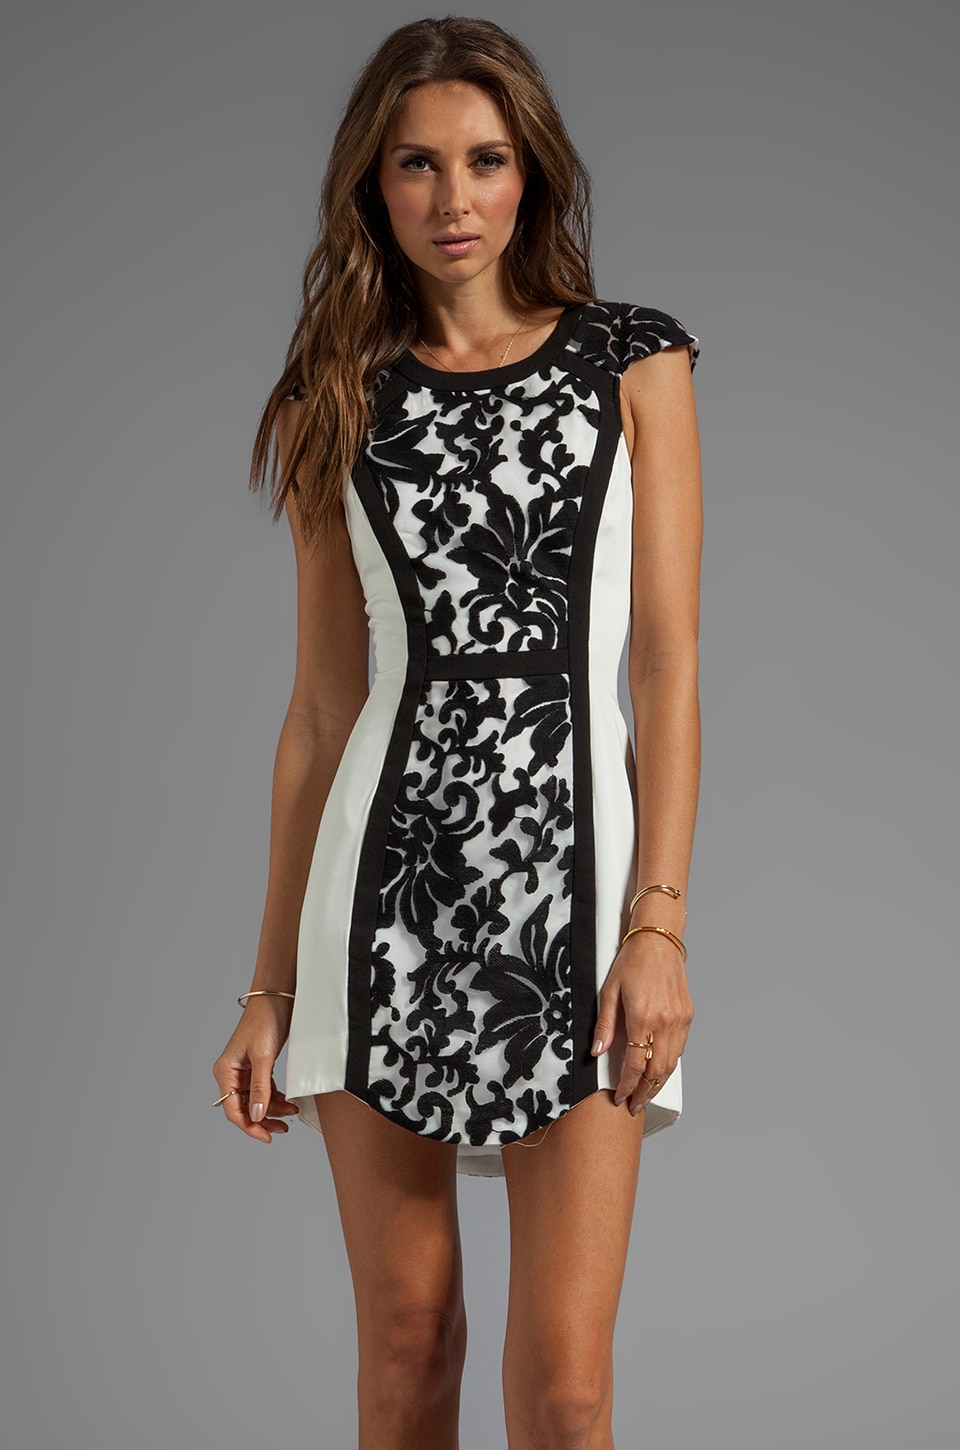 C/MEO Into the Flame Dress in White/Black